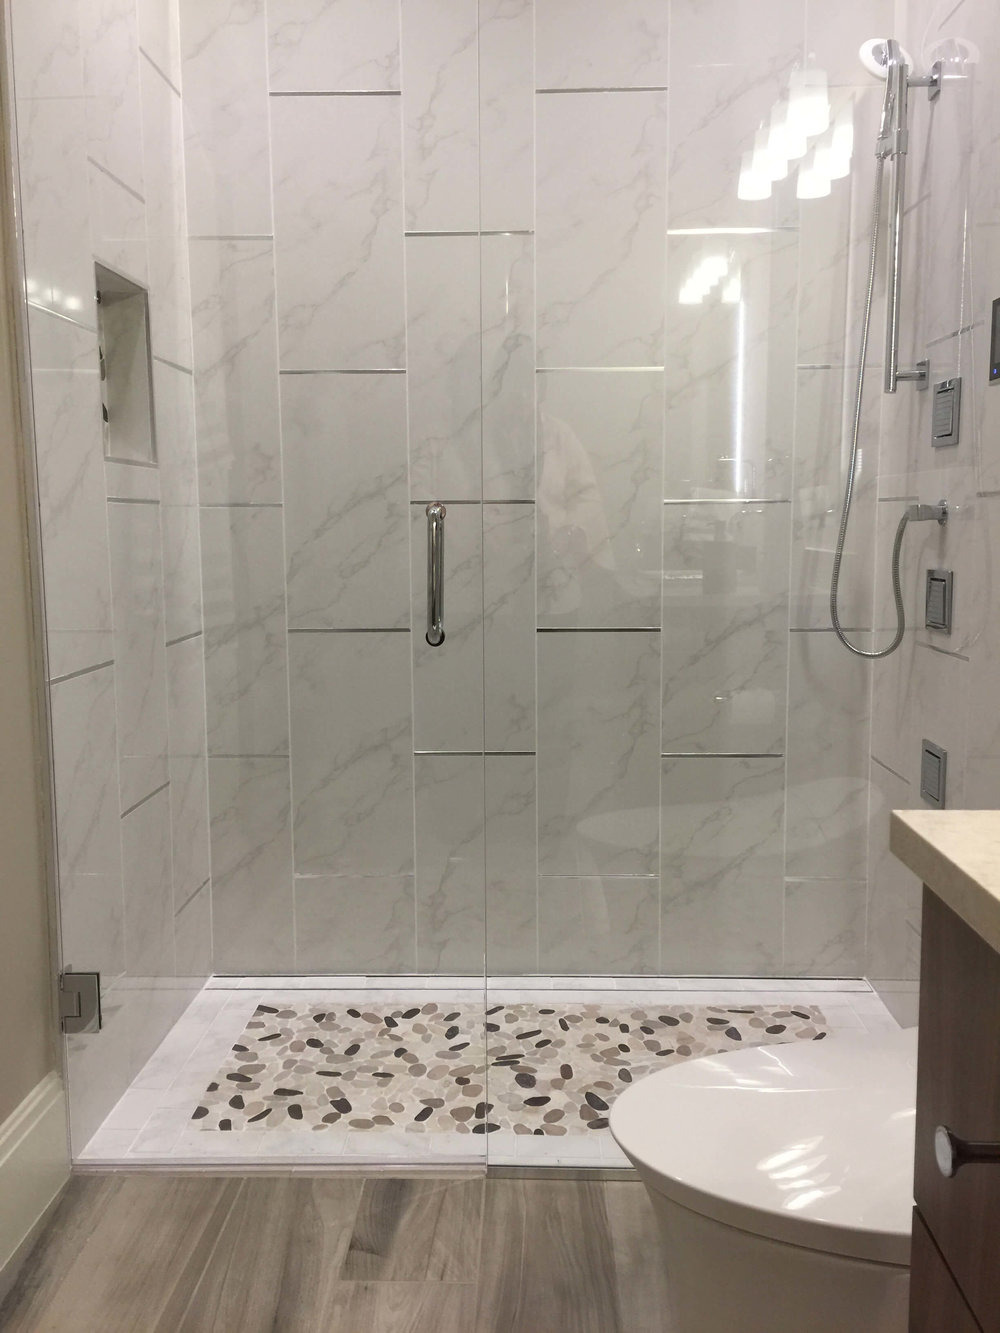 large shower with no curb